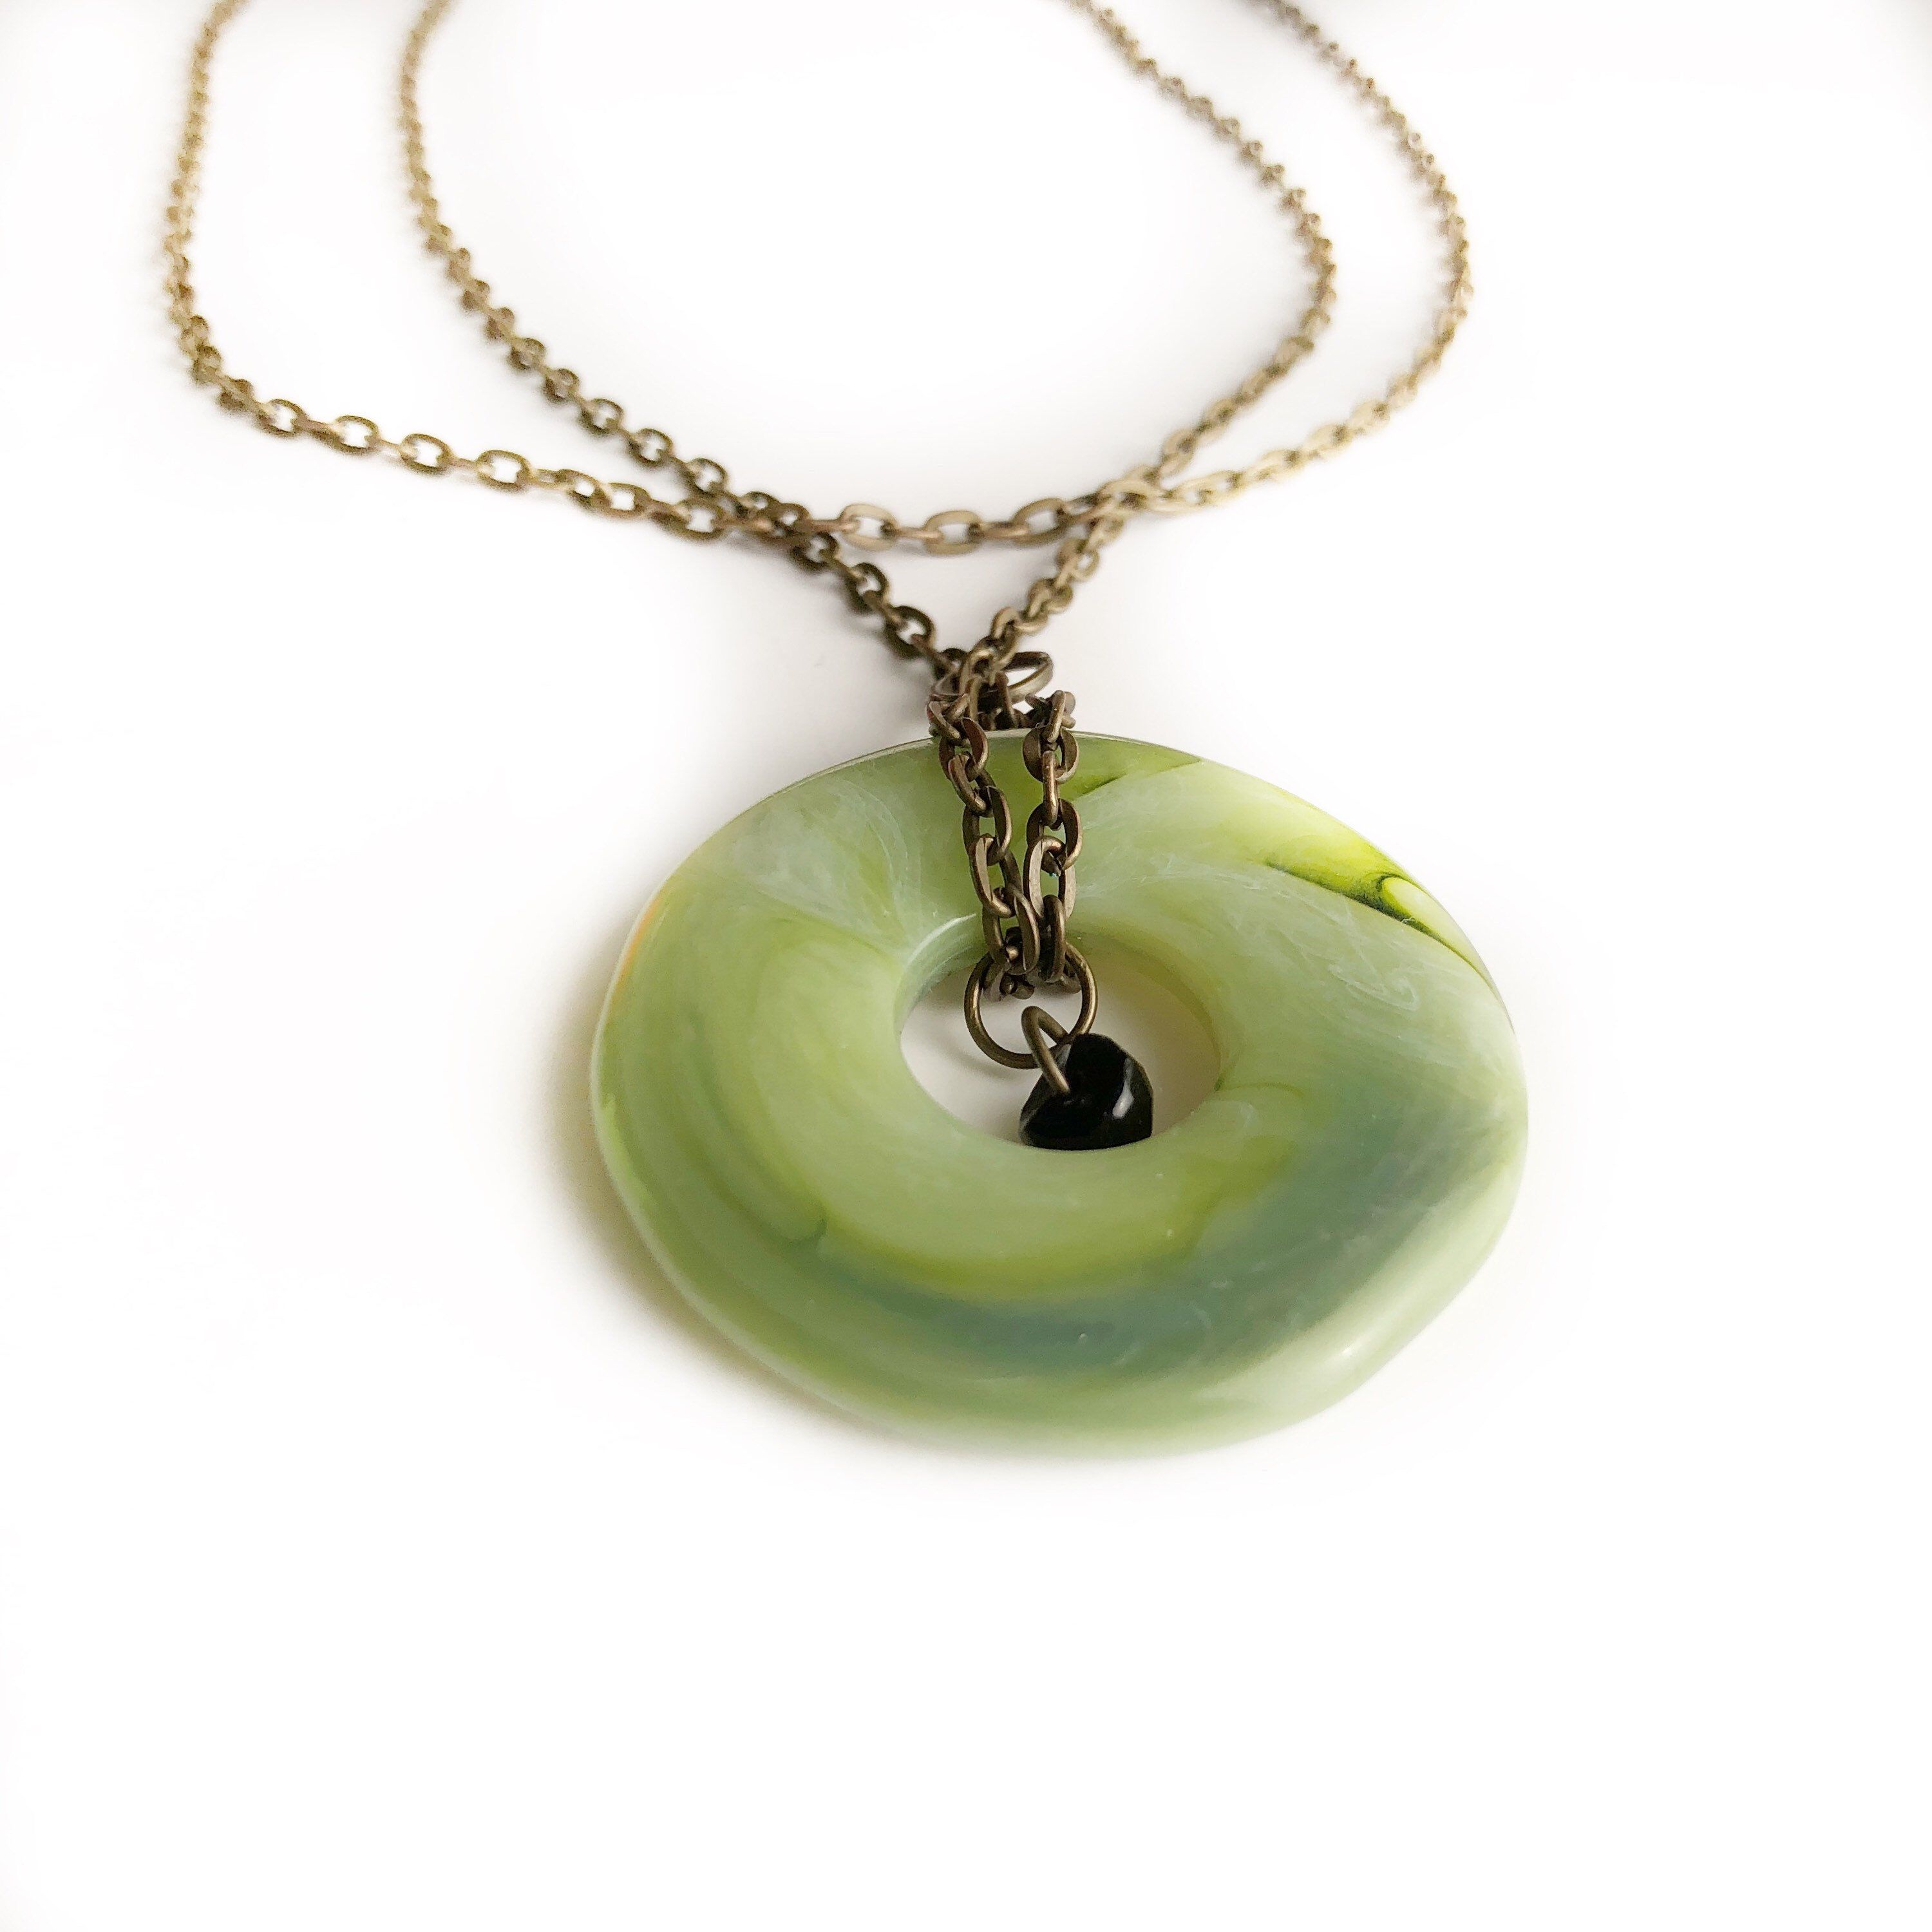 Jade circle pendant necklace funky necklace jade stone necklace excited to share the latest addition to my etsy shop jade circle pendant necklace mozeypictures Choice Image